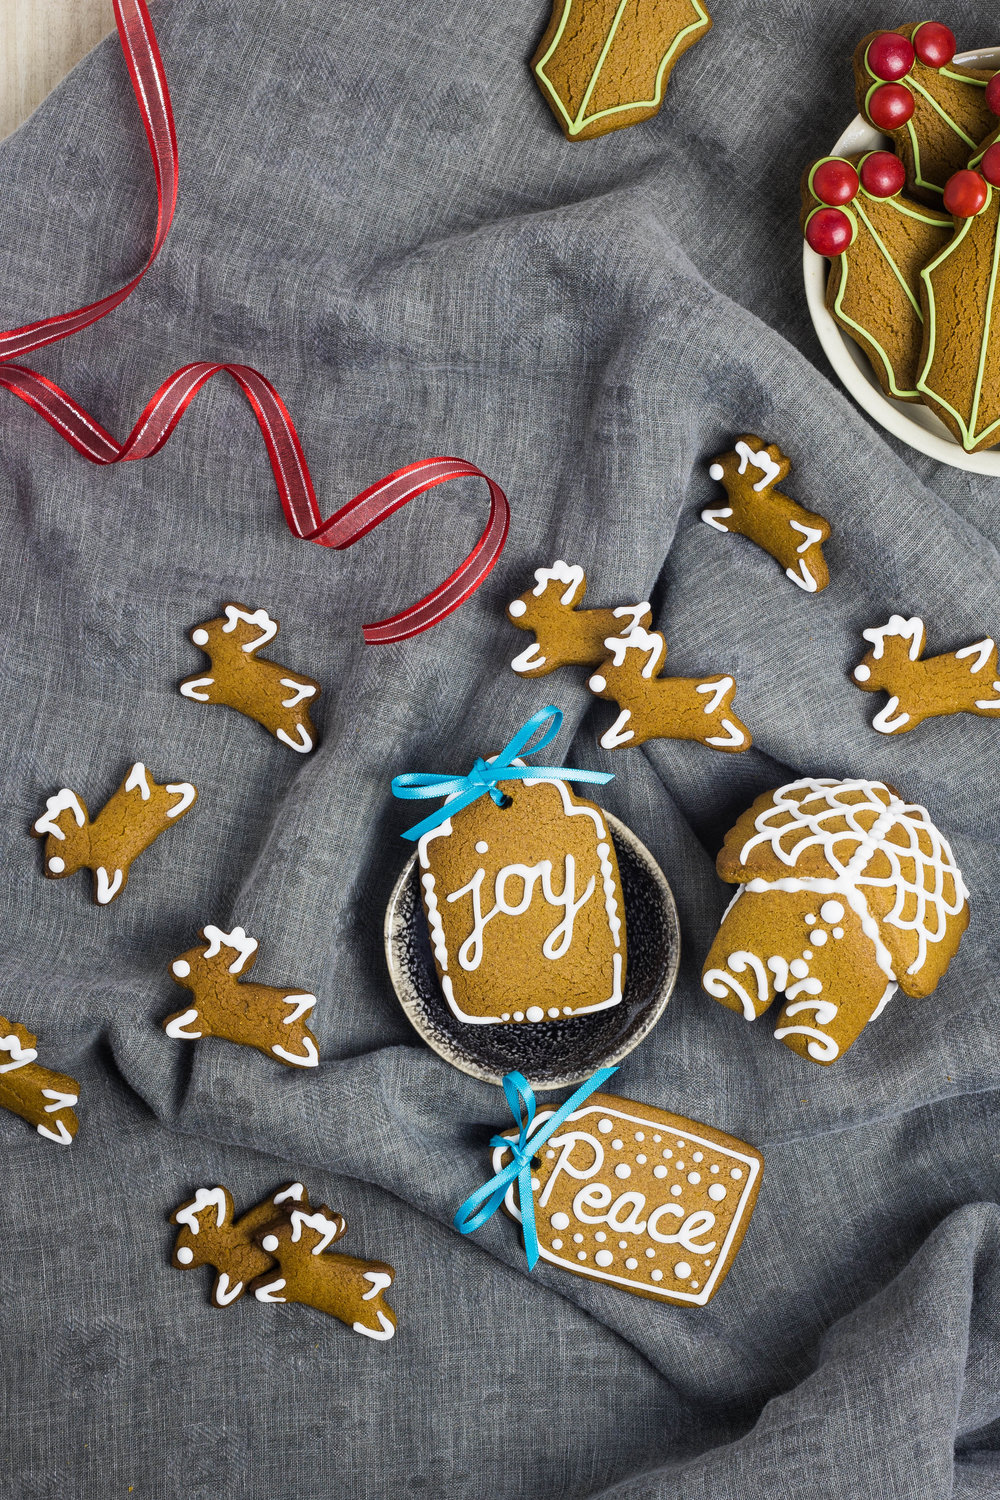 Assorted decorated gingerbread cookies, displayed in small bowls or on a folded gray cloth, with red and blue ribbons.